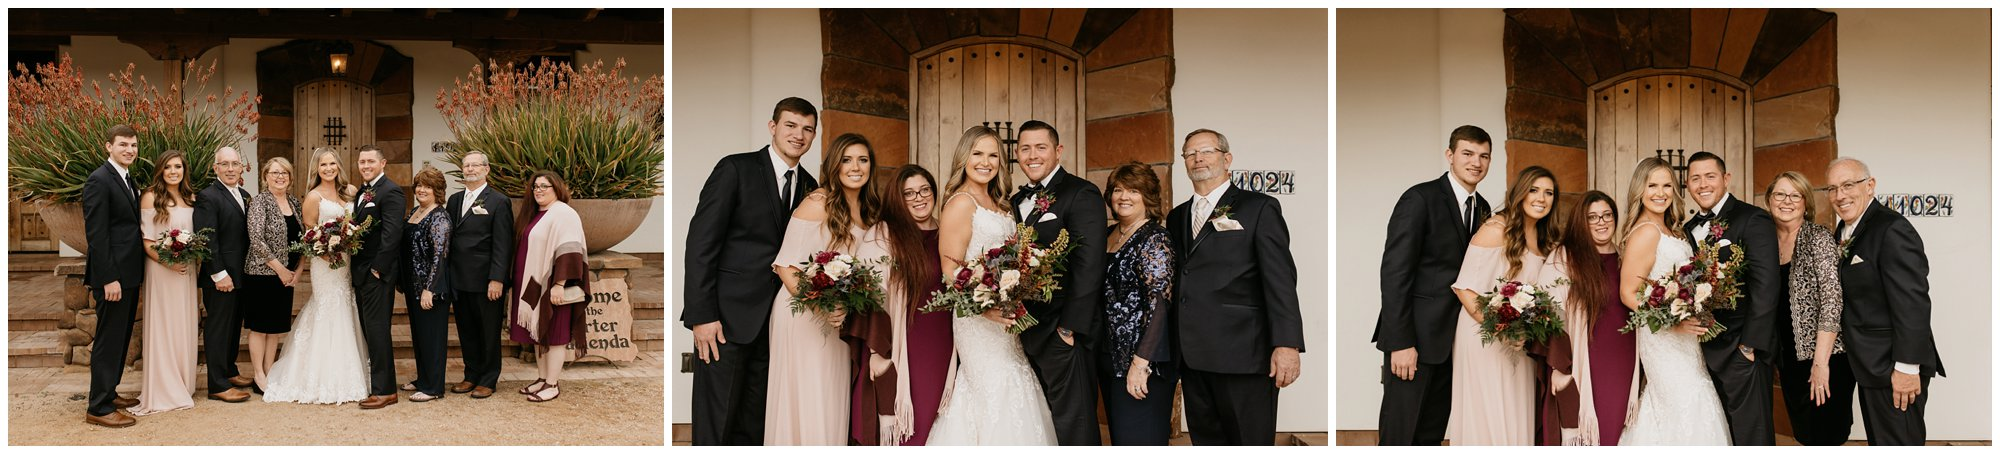 Arizona Wedding Photographer - Roberts Wedding_0035.jpg